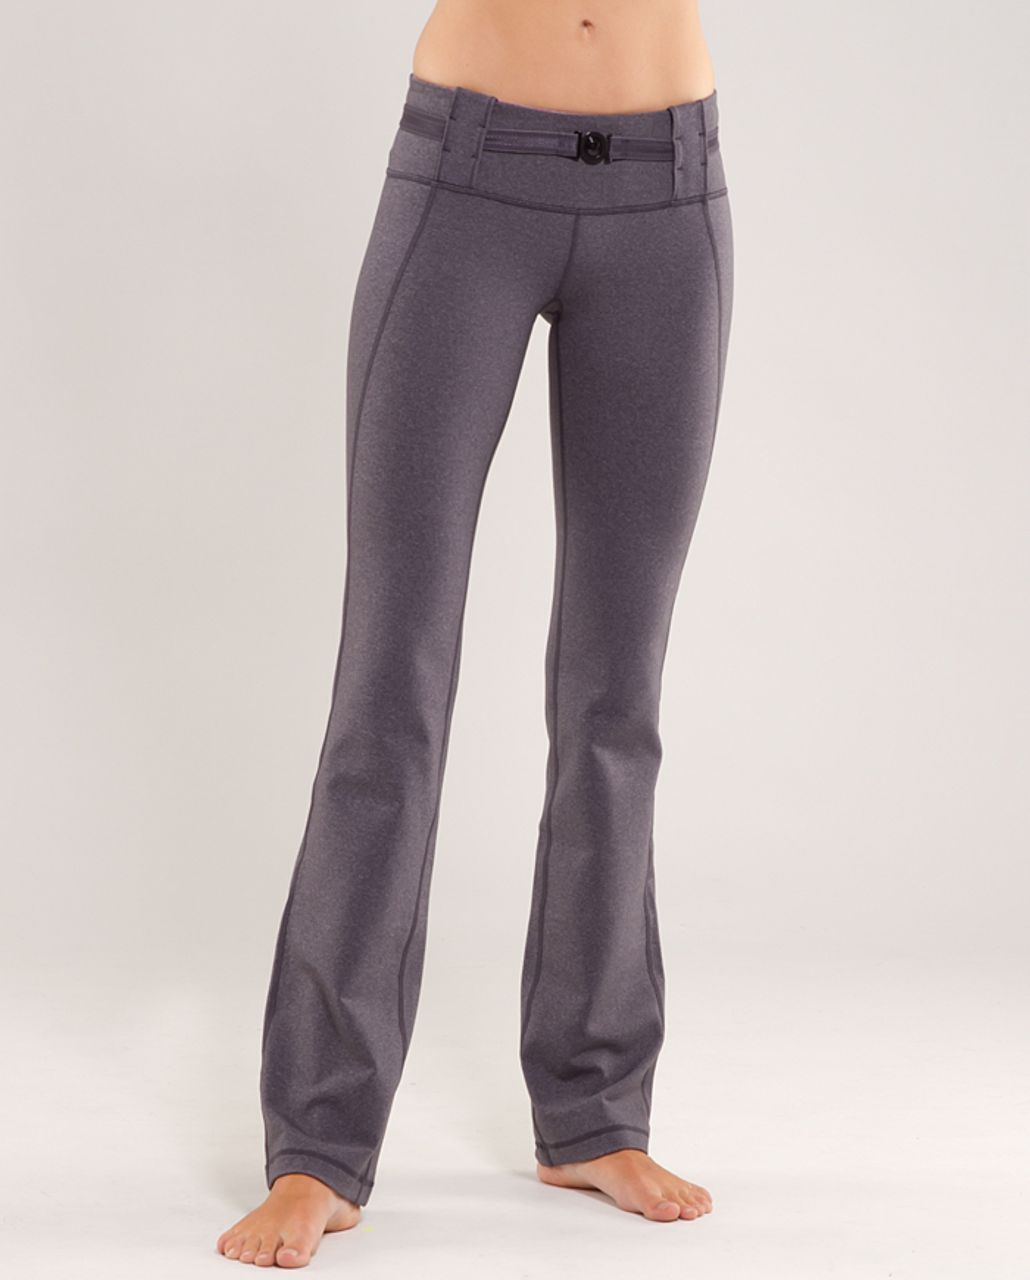 Lululemon Appreciation Pant - Heathered Coal /  Muted Mauve Stripes Galore